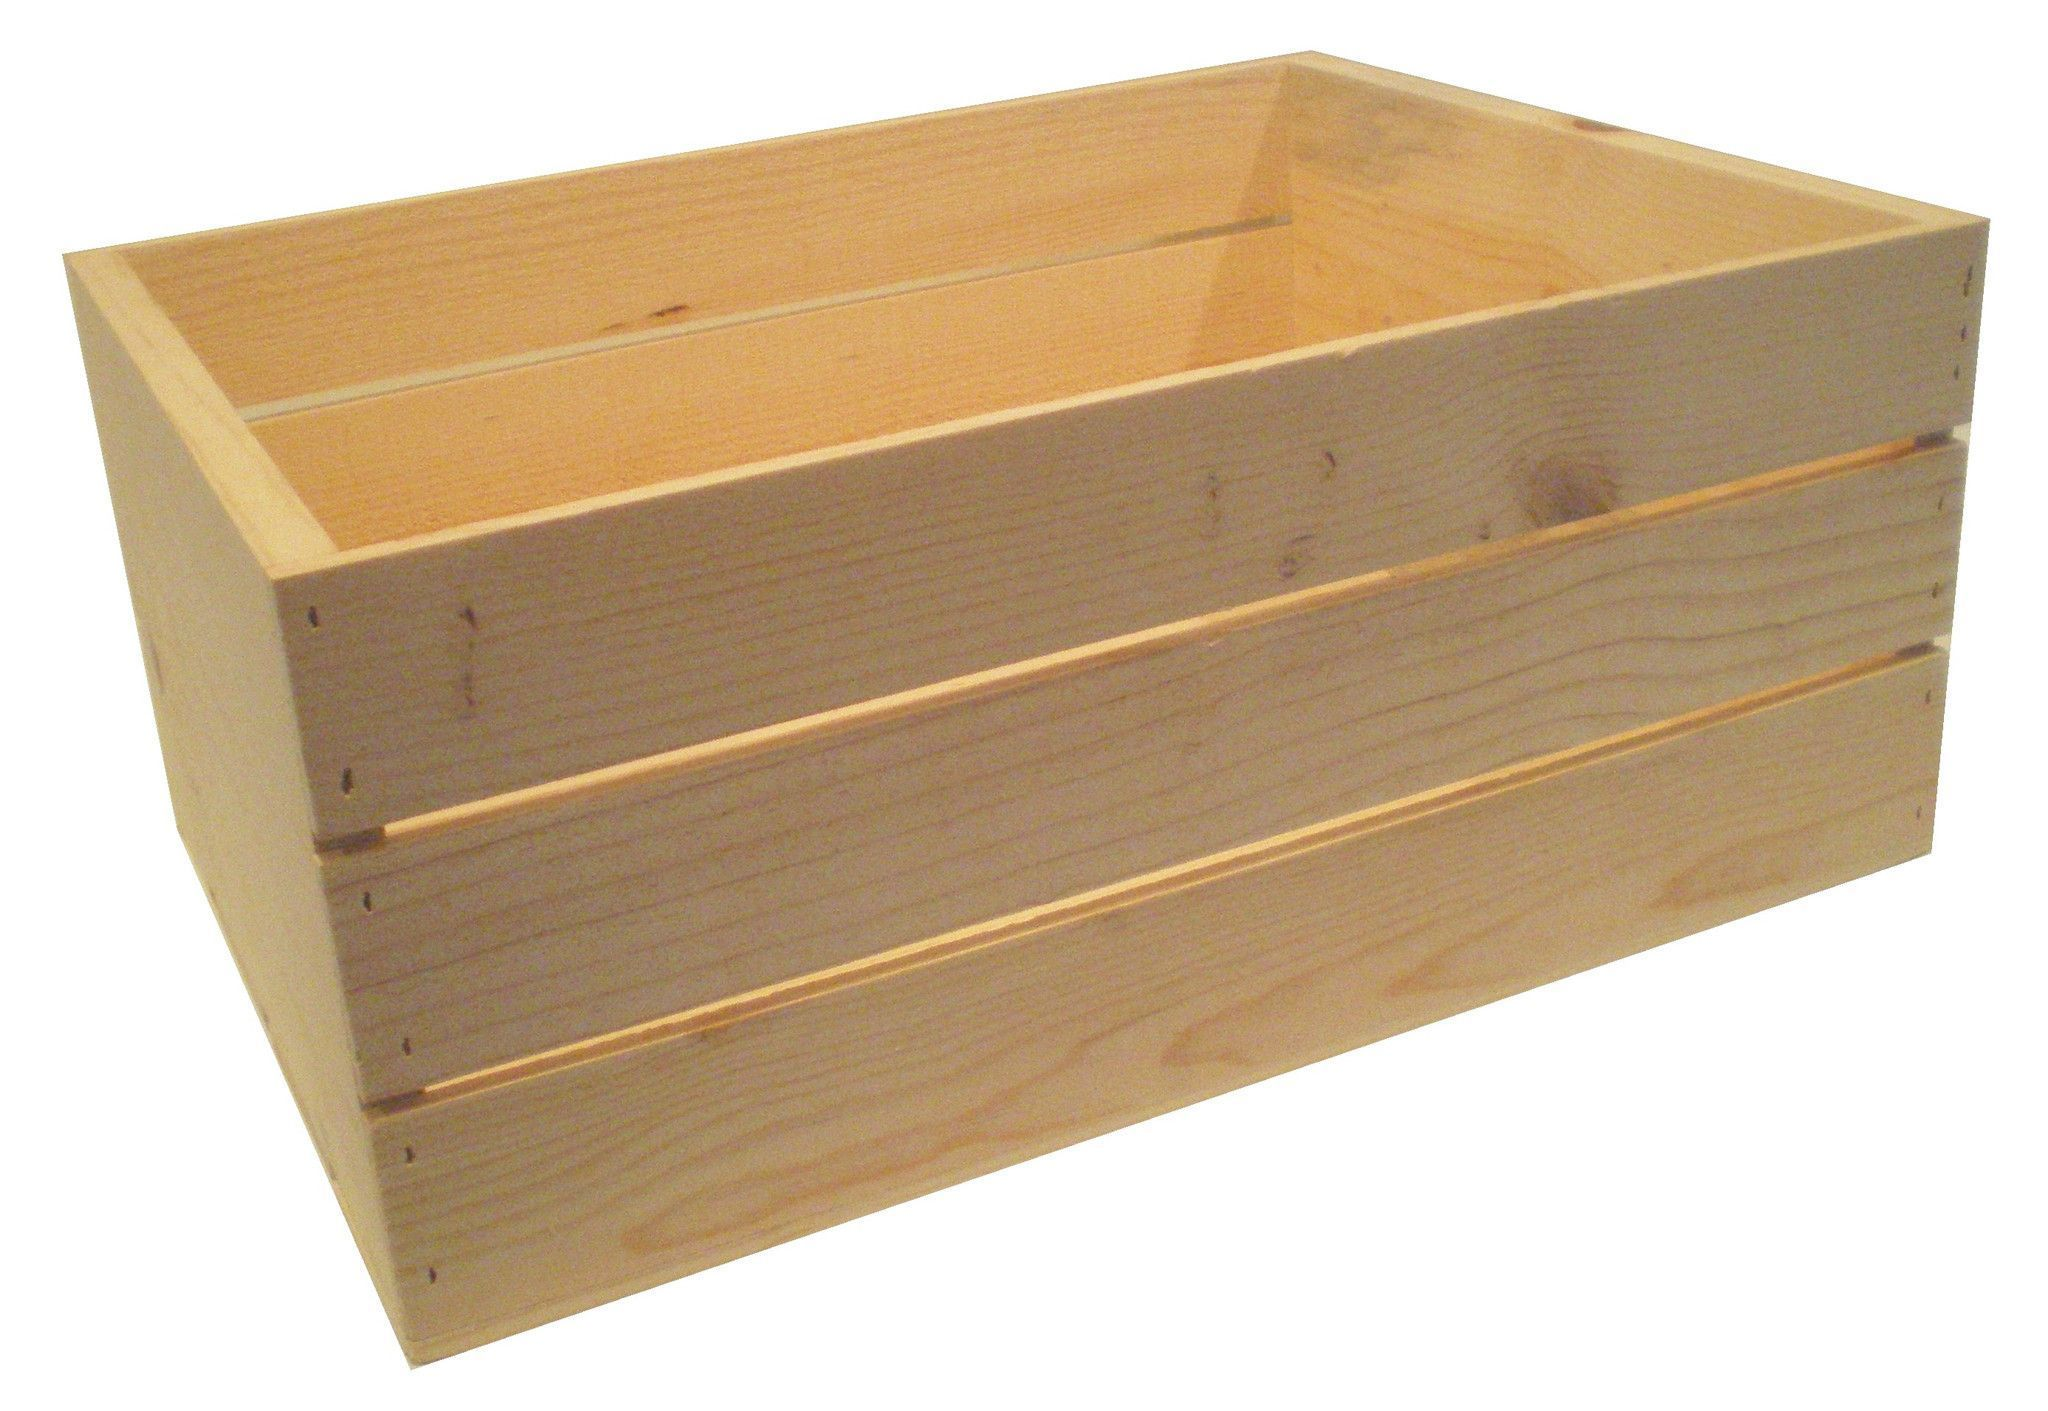 Photo of 22-inch Wooden Crate #22inch #Crate #large shipping crates #wooden